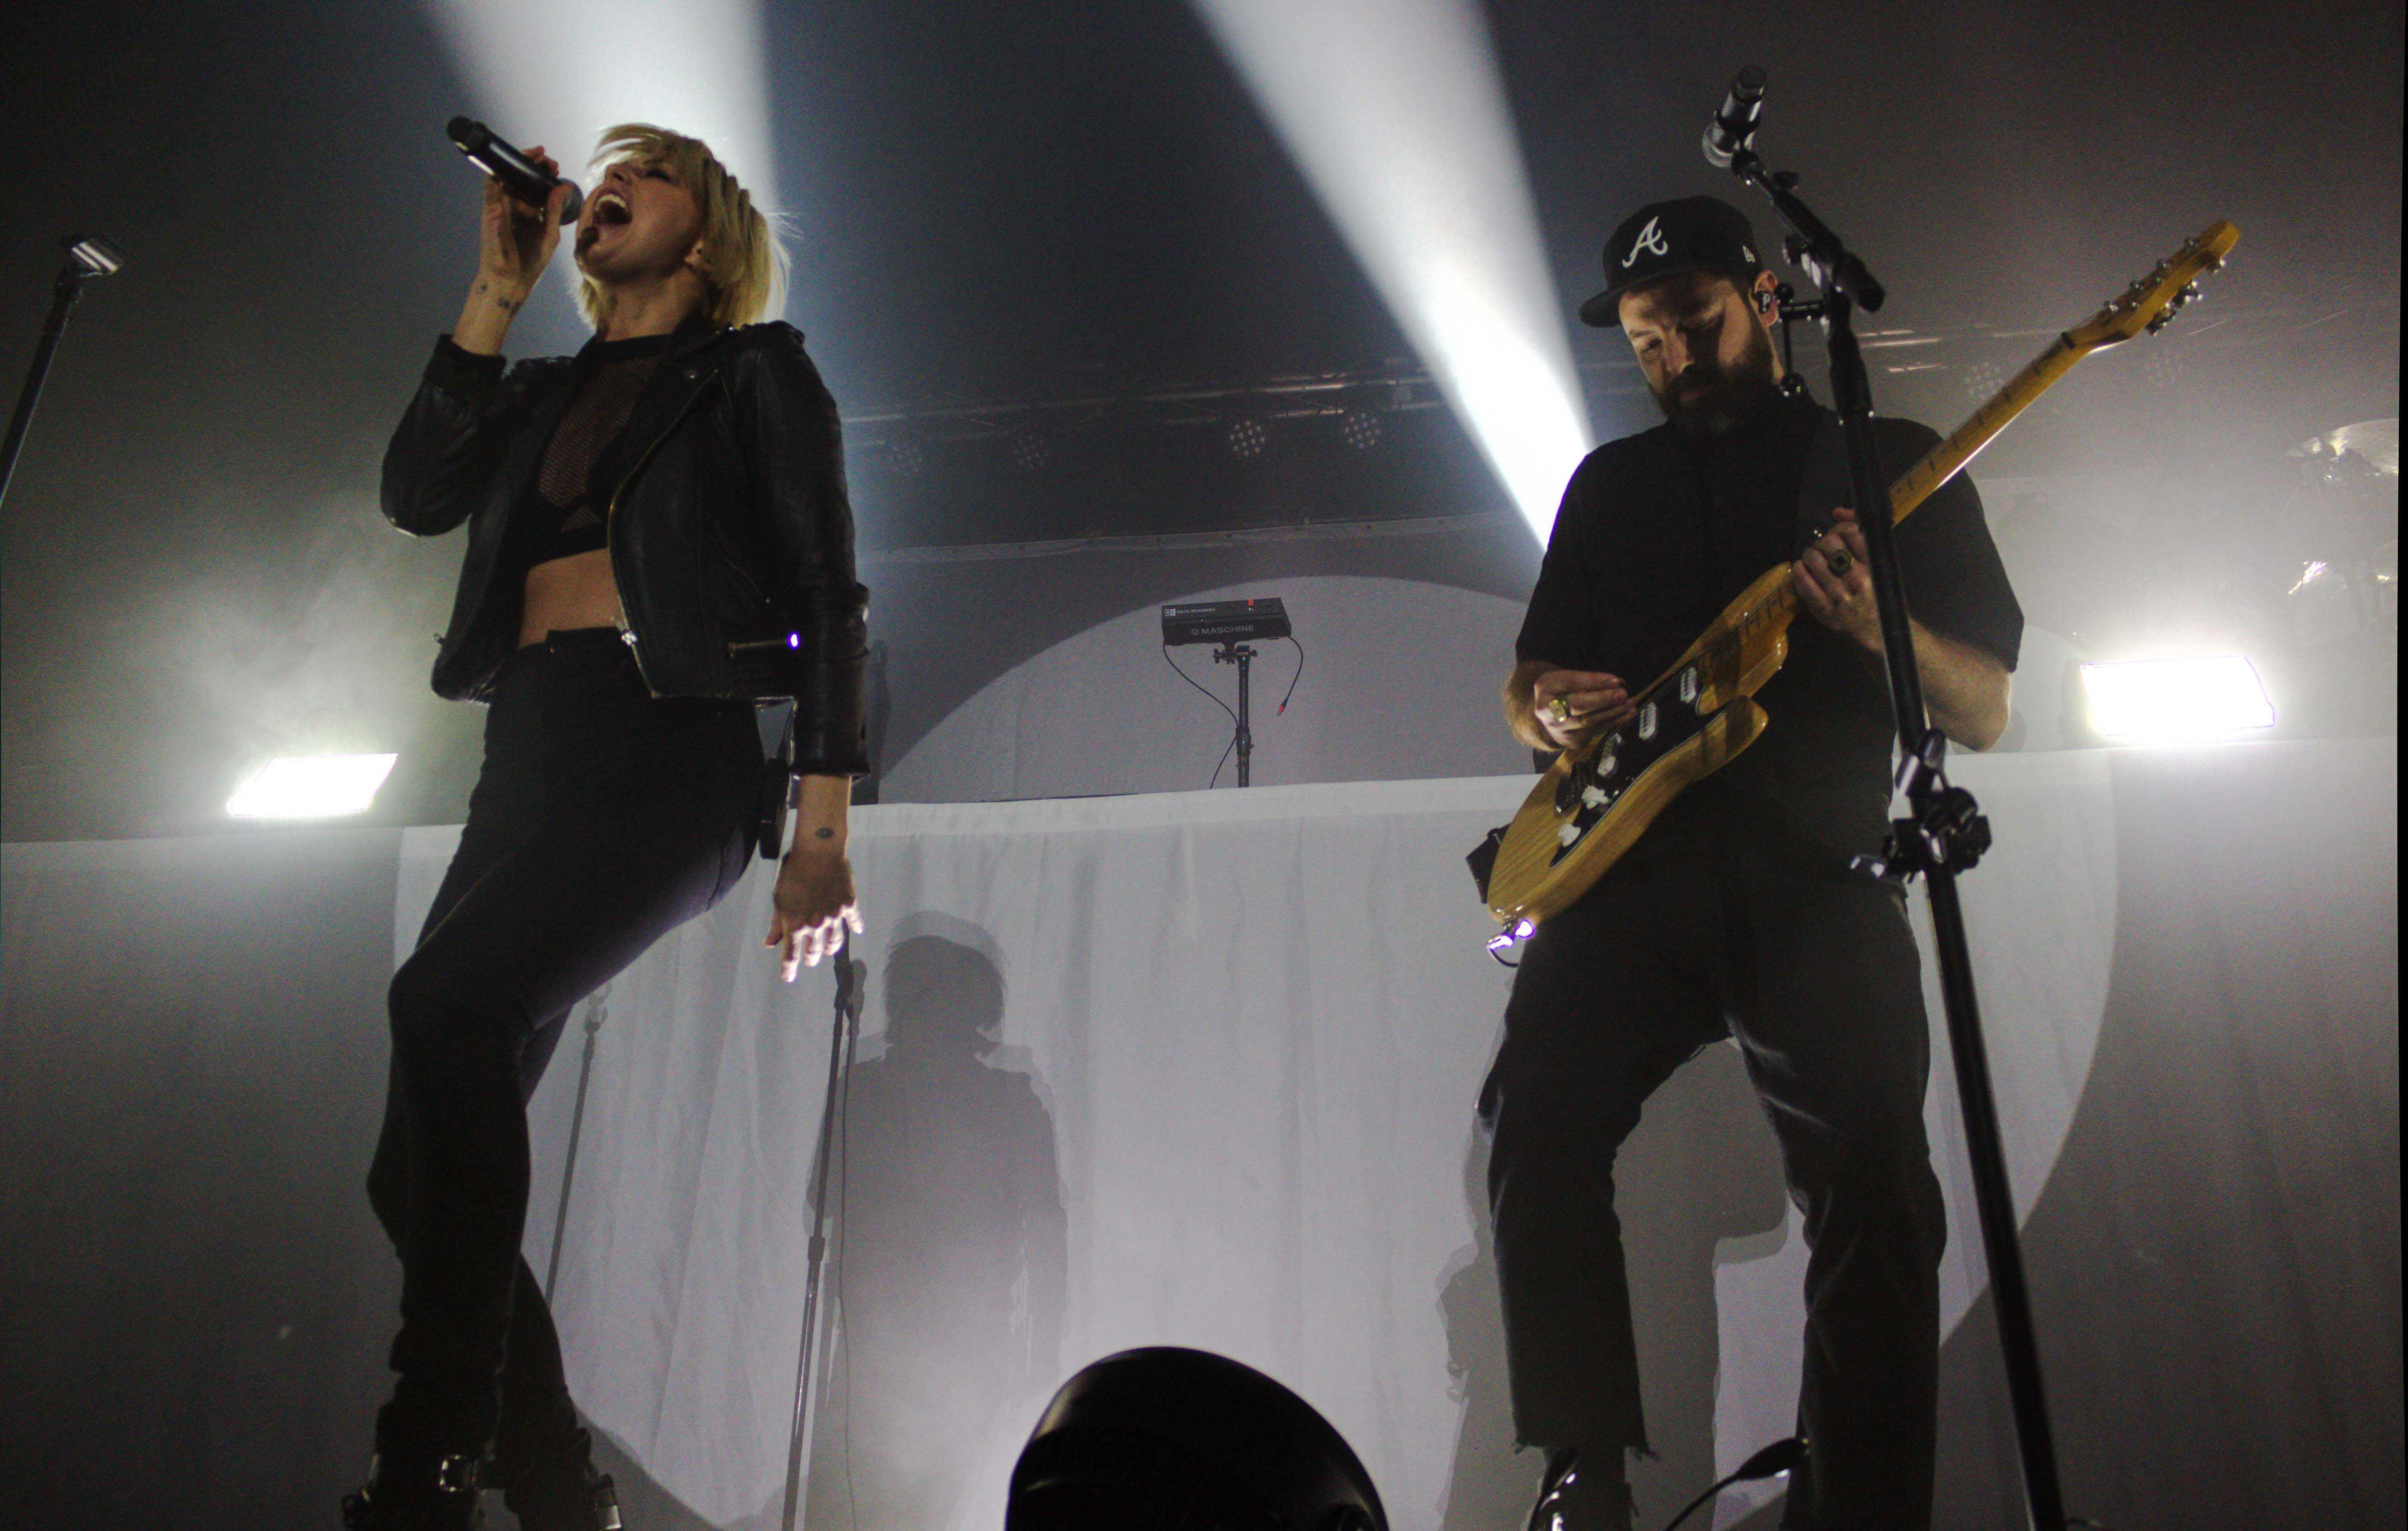 The electro-pop music group Phantogram performed at the Canopy Club on March 14th, 2017.